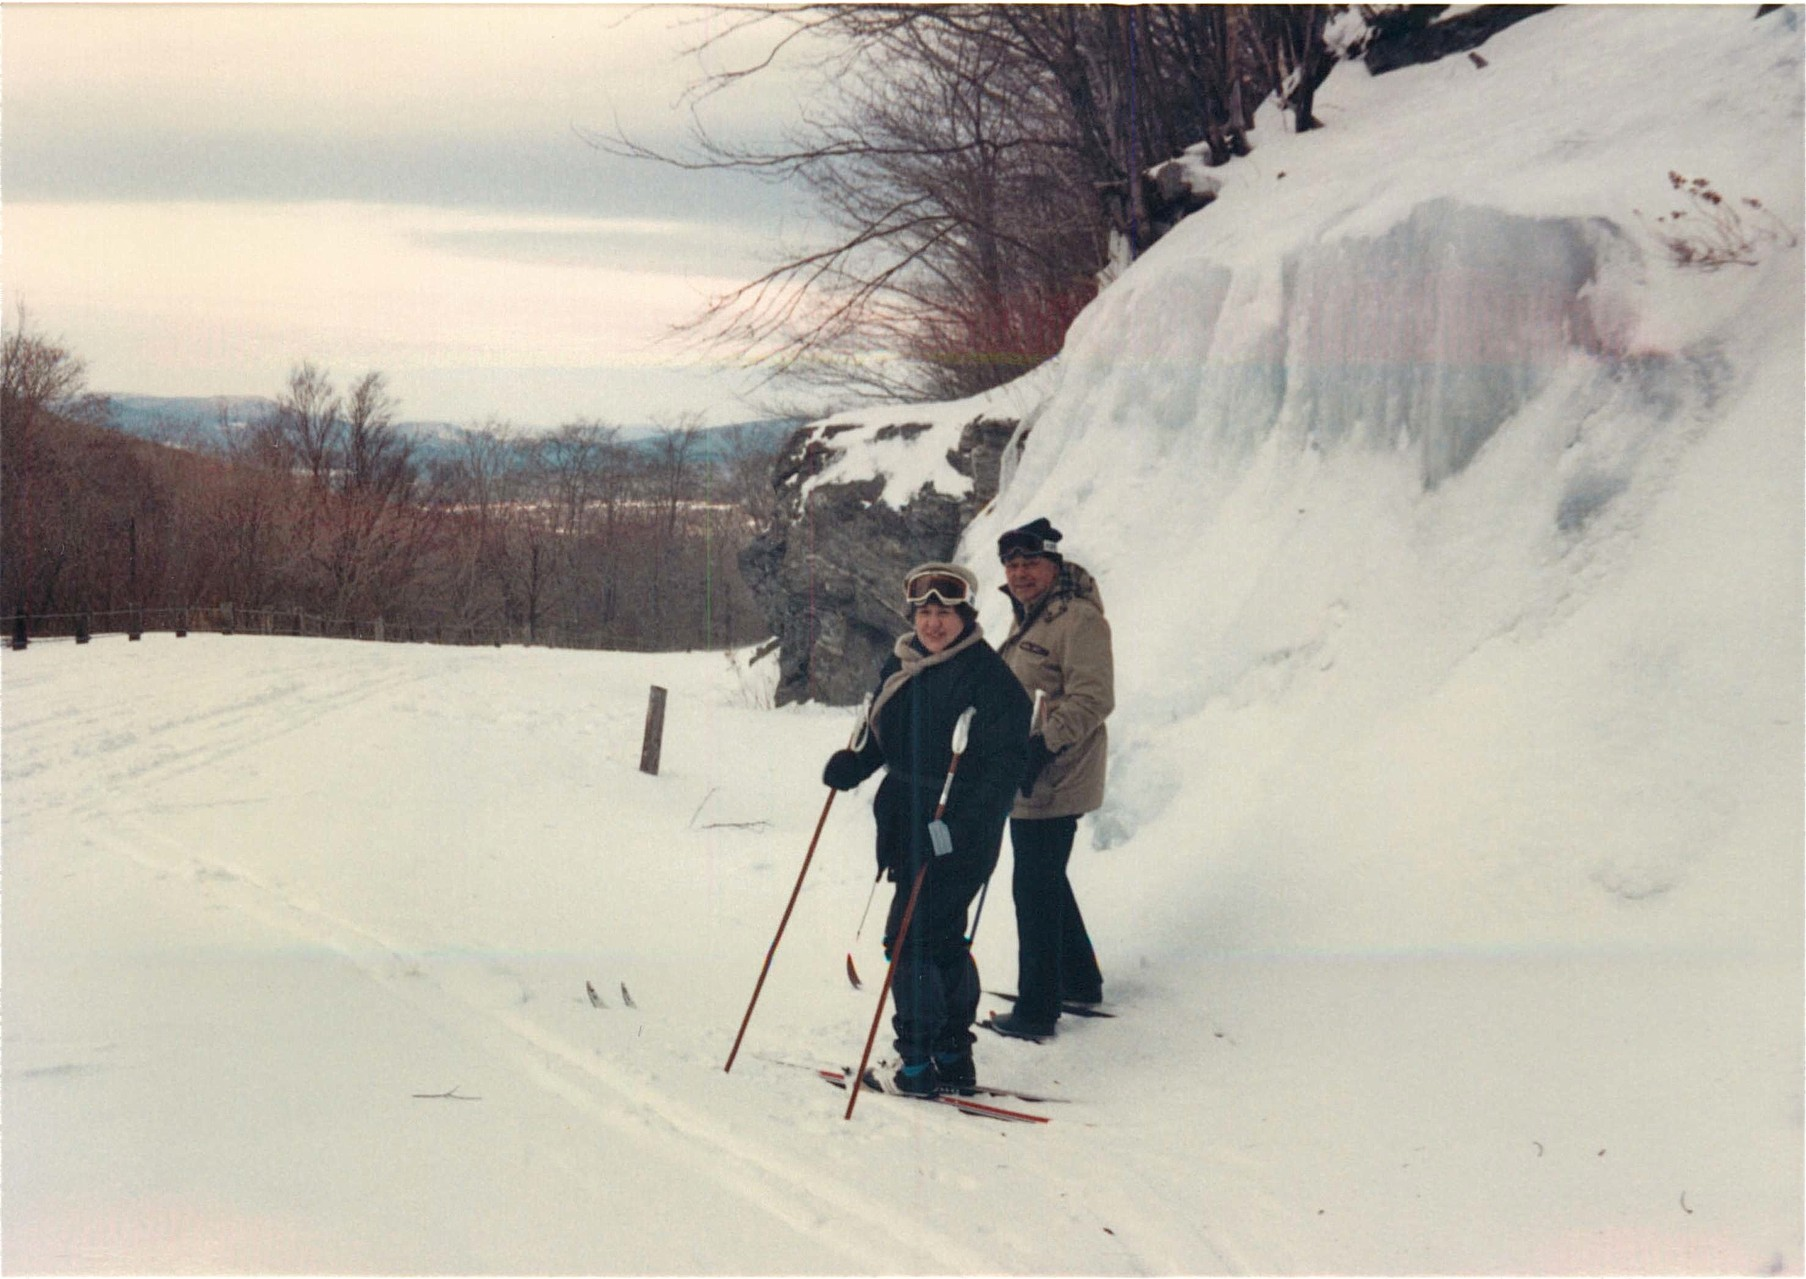 Eleanor & Al Gudas, Smuggler's Notch, Vt